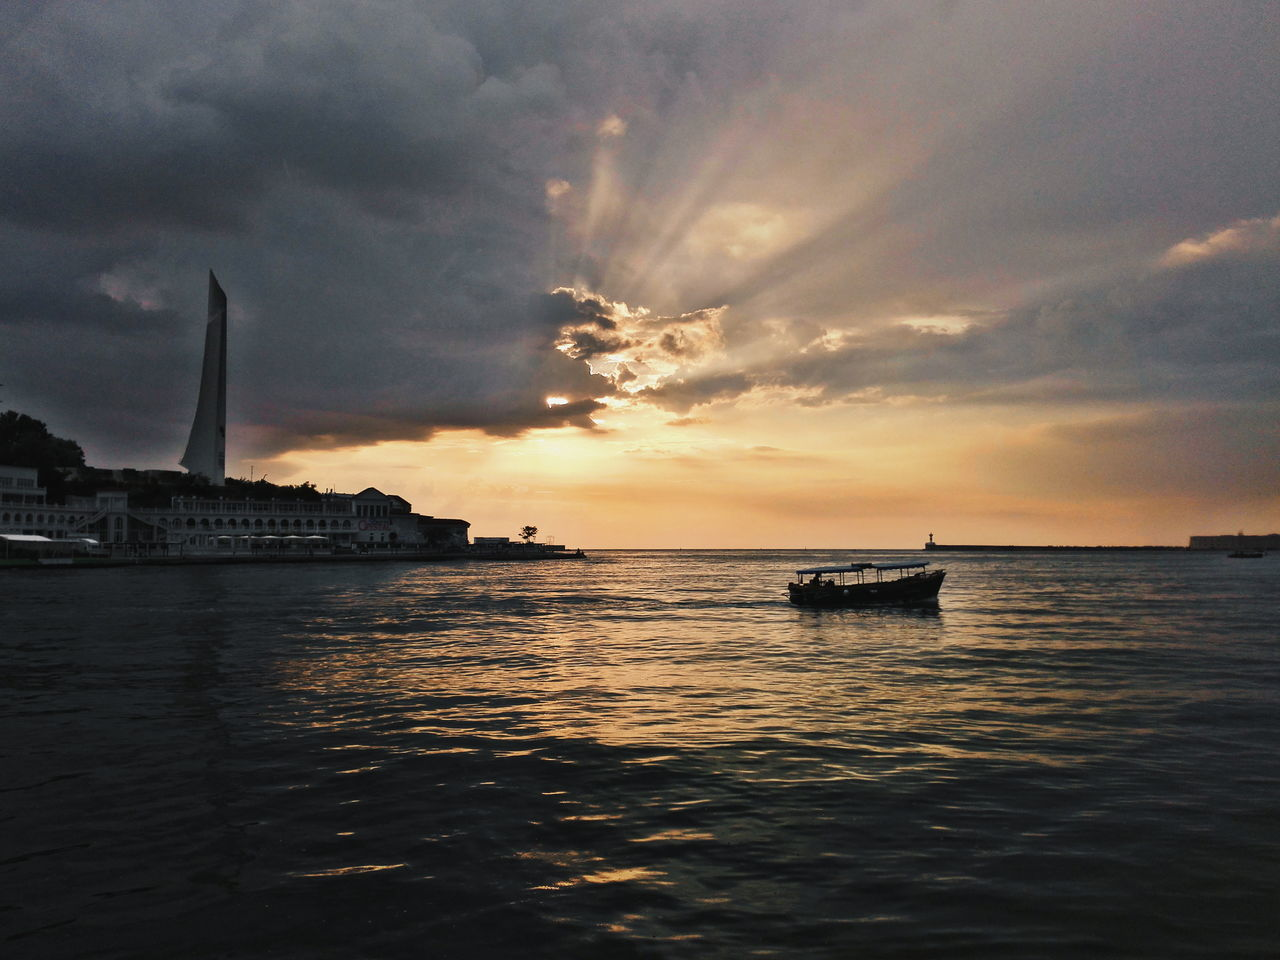 My city 💙 Севастополь Sevastopol' Sevastopol  Russia Cremea Sunset Cloud - Sky Nautical Vessel Sea Sky Water No People Sailboat Outdoors Dramatic Sky Huawei Honor6 Huawei Honor 6 Landscape Beauty In Nature Horizon Over Water Nature Romantic Sunset Romantic Scenery Tranquil Scene